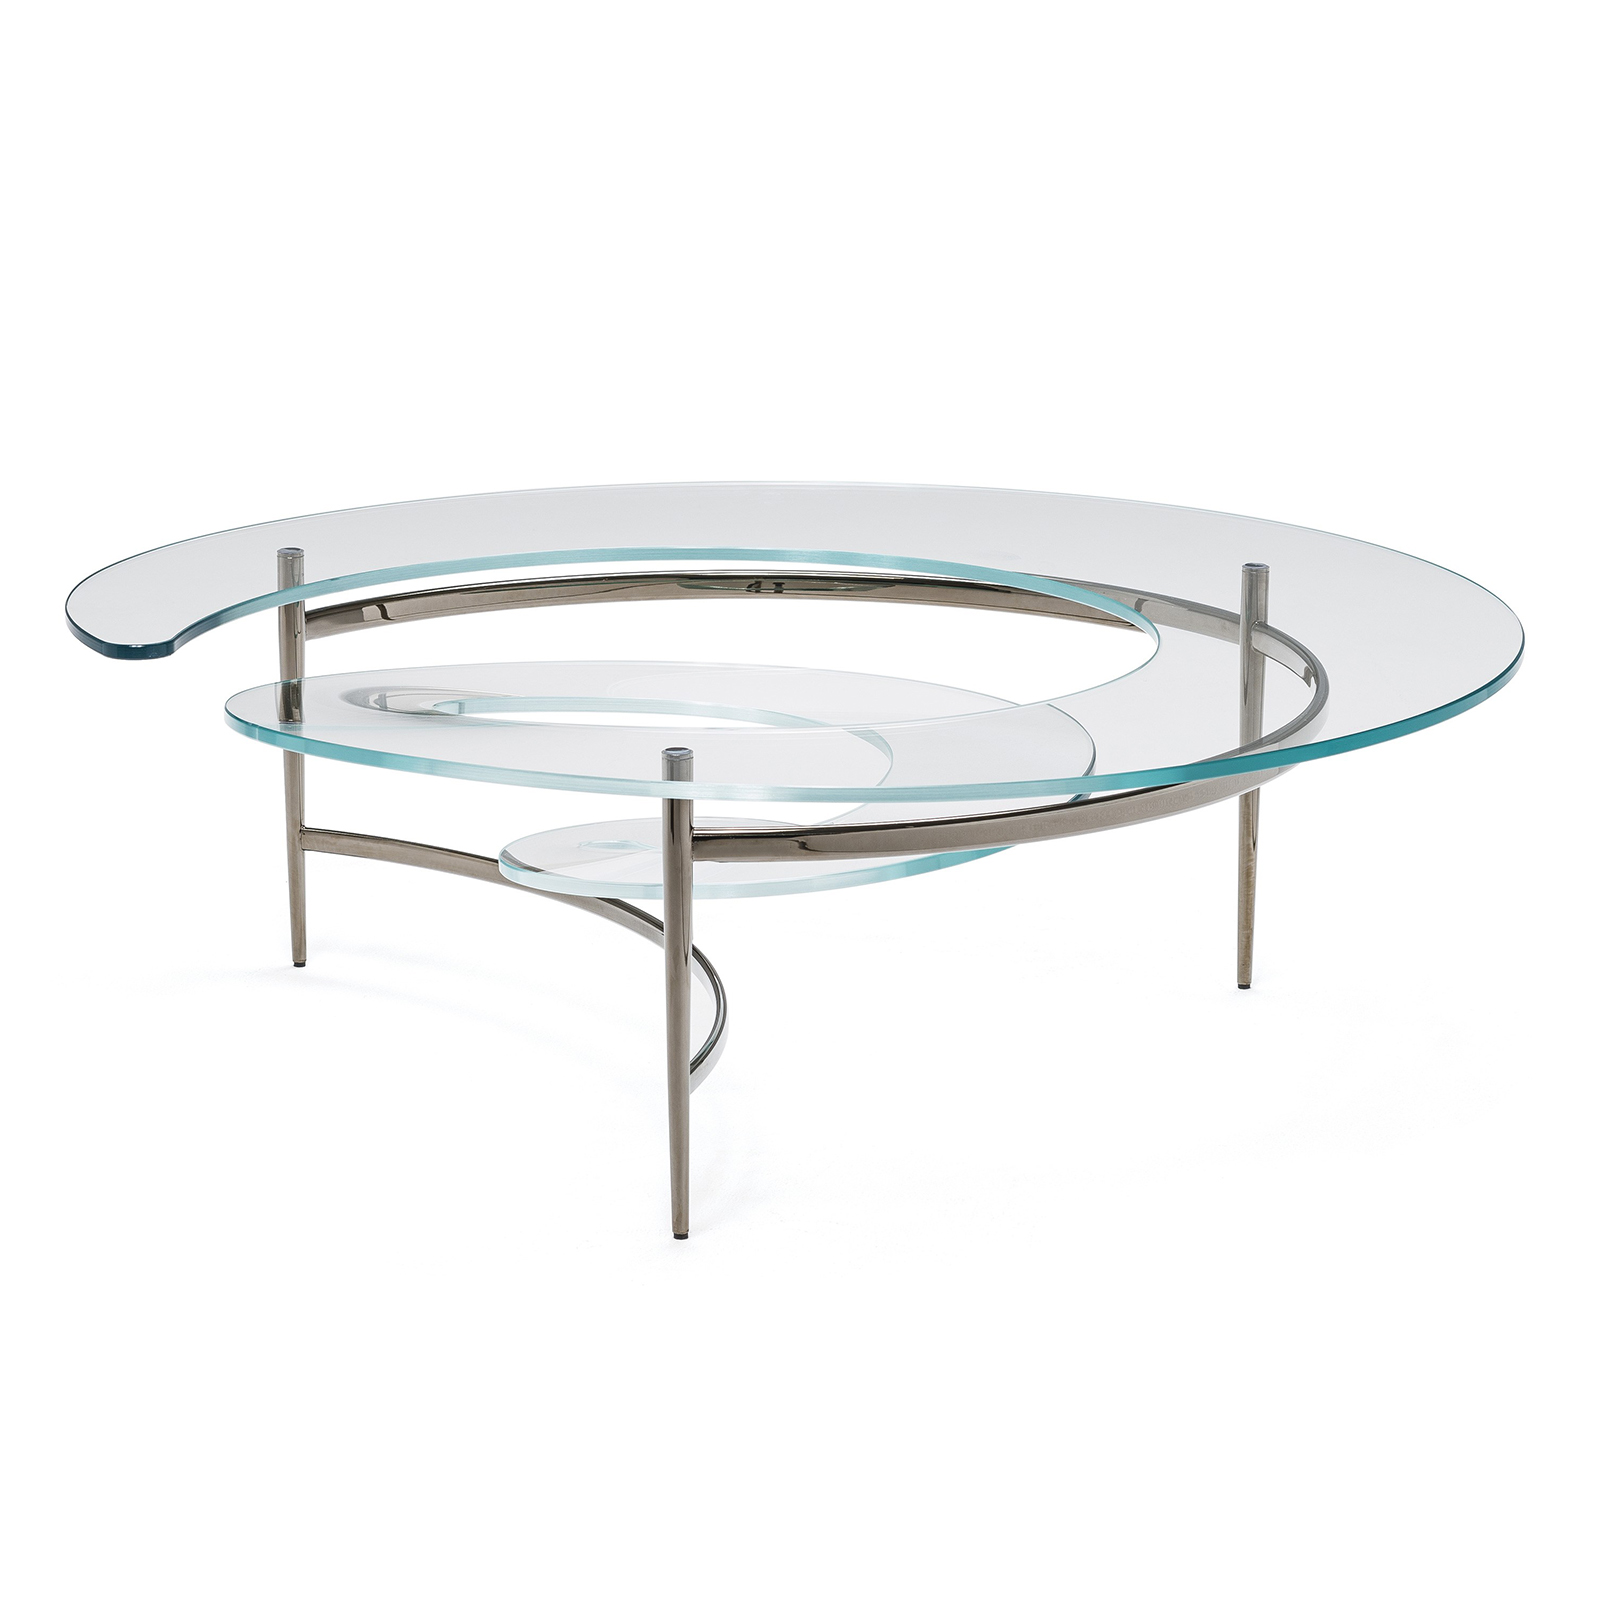 Table basse design en verre spirale mobilier de luxe for Table basse tout en verre